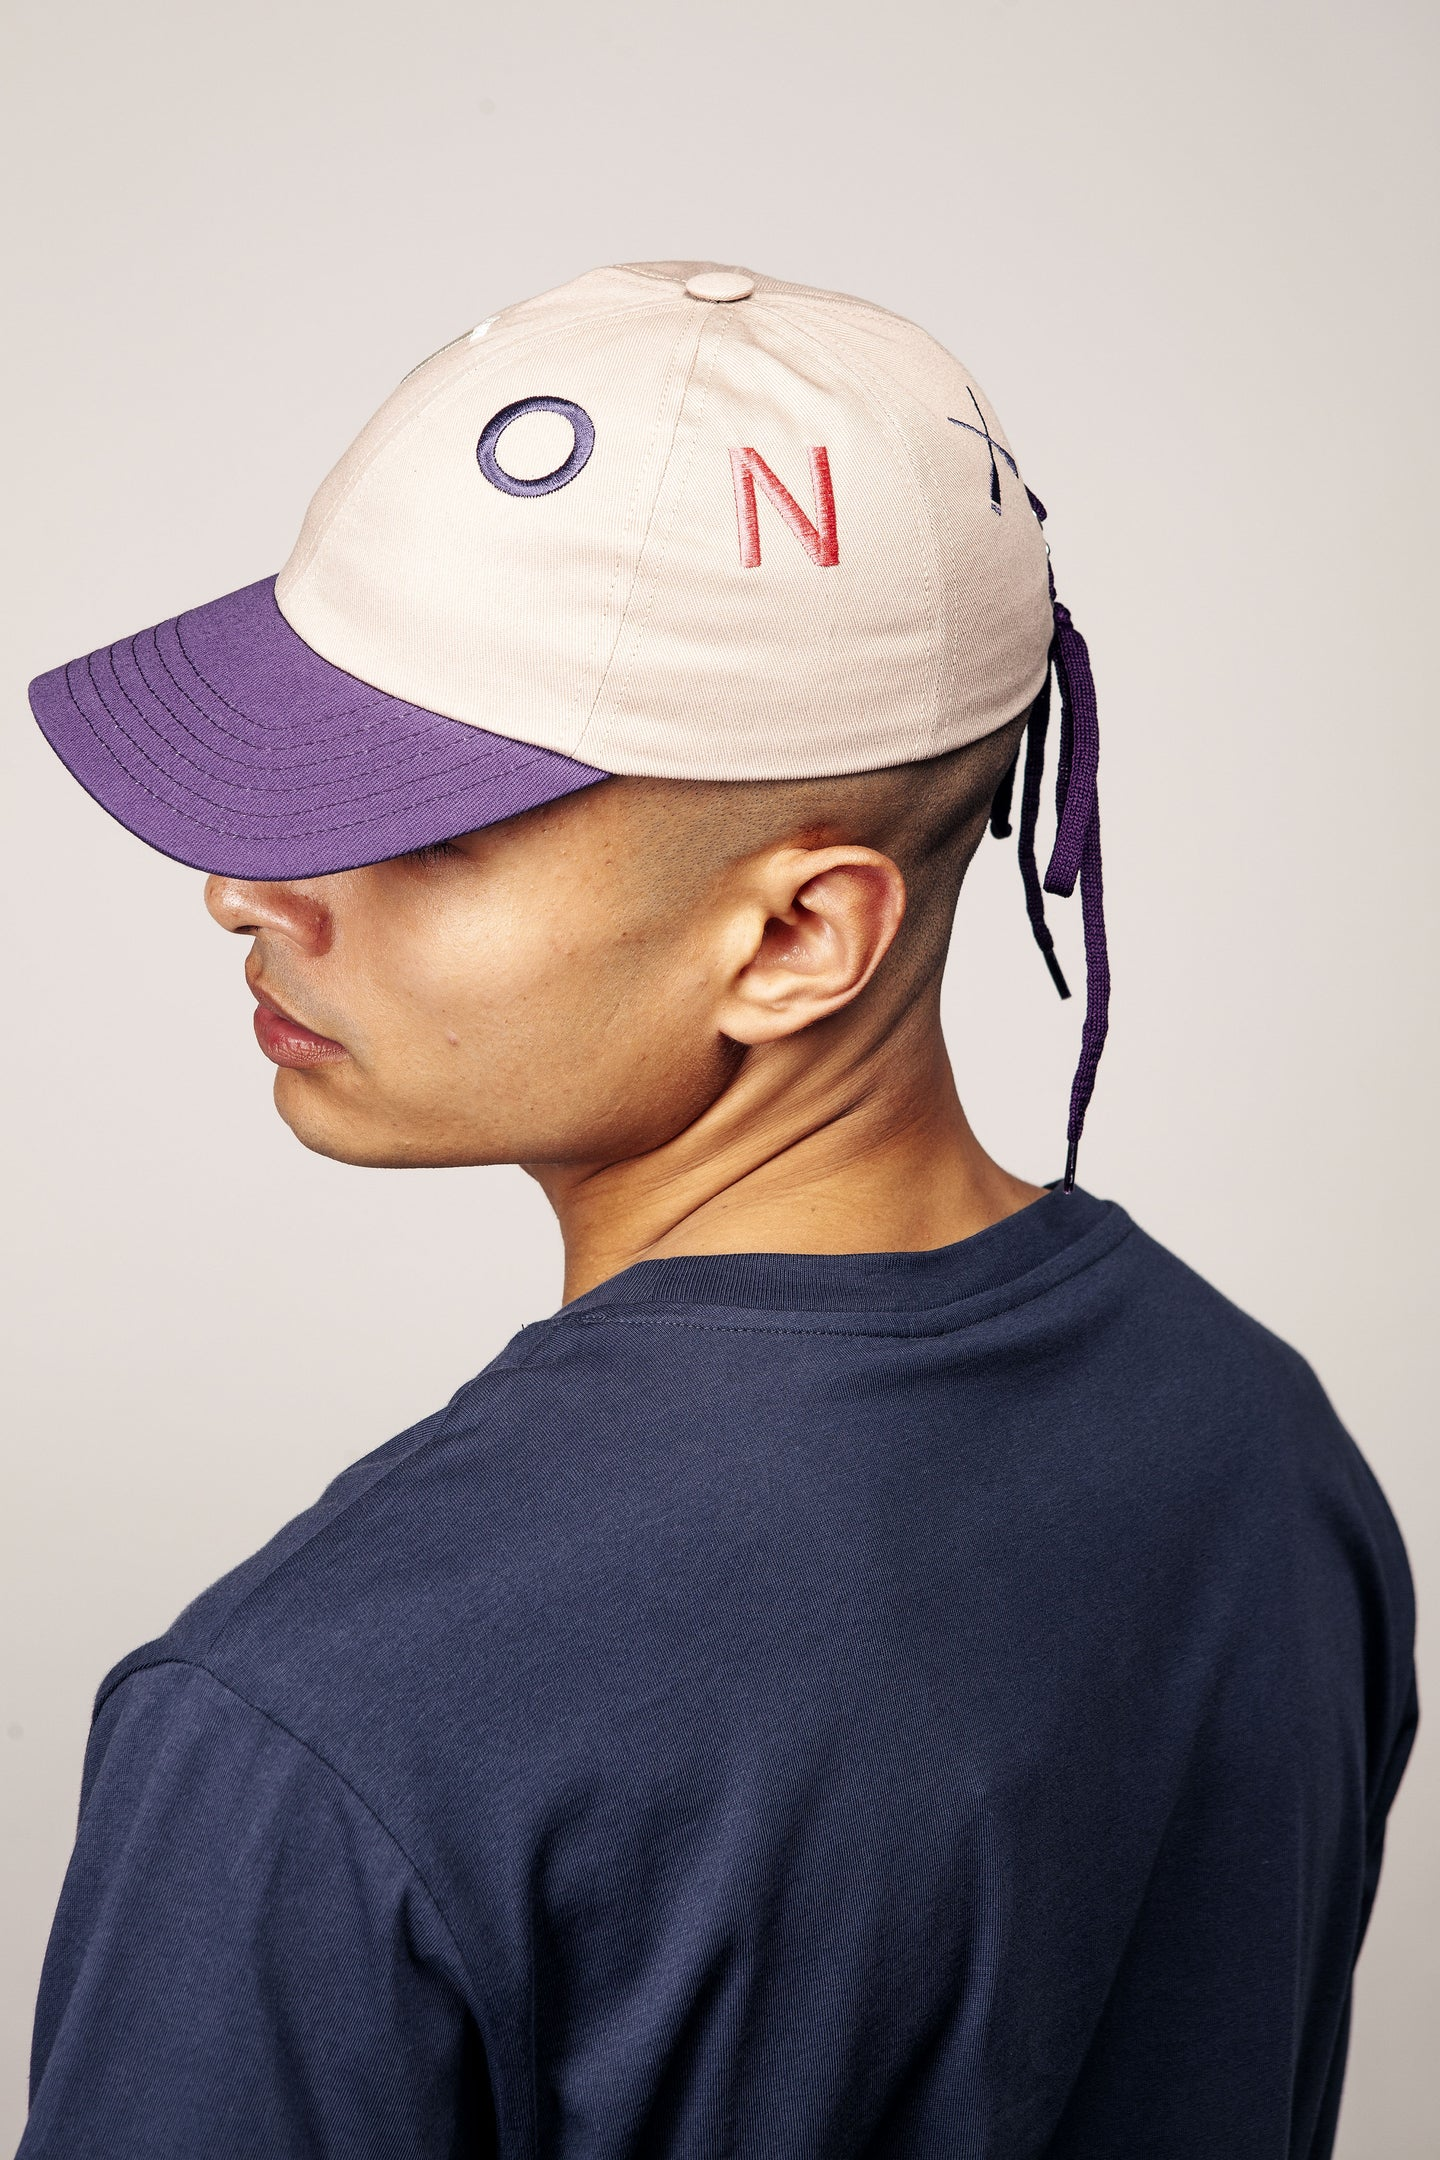 CITY CAP CURVED VISOR BEIGE & PURPLE LACE